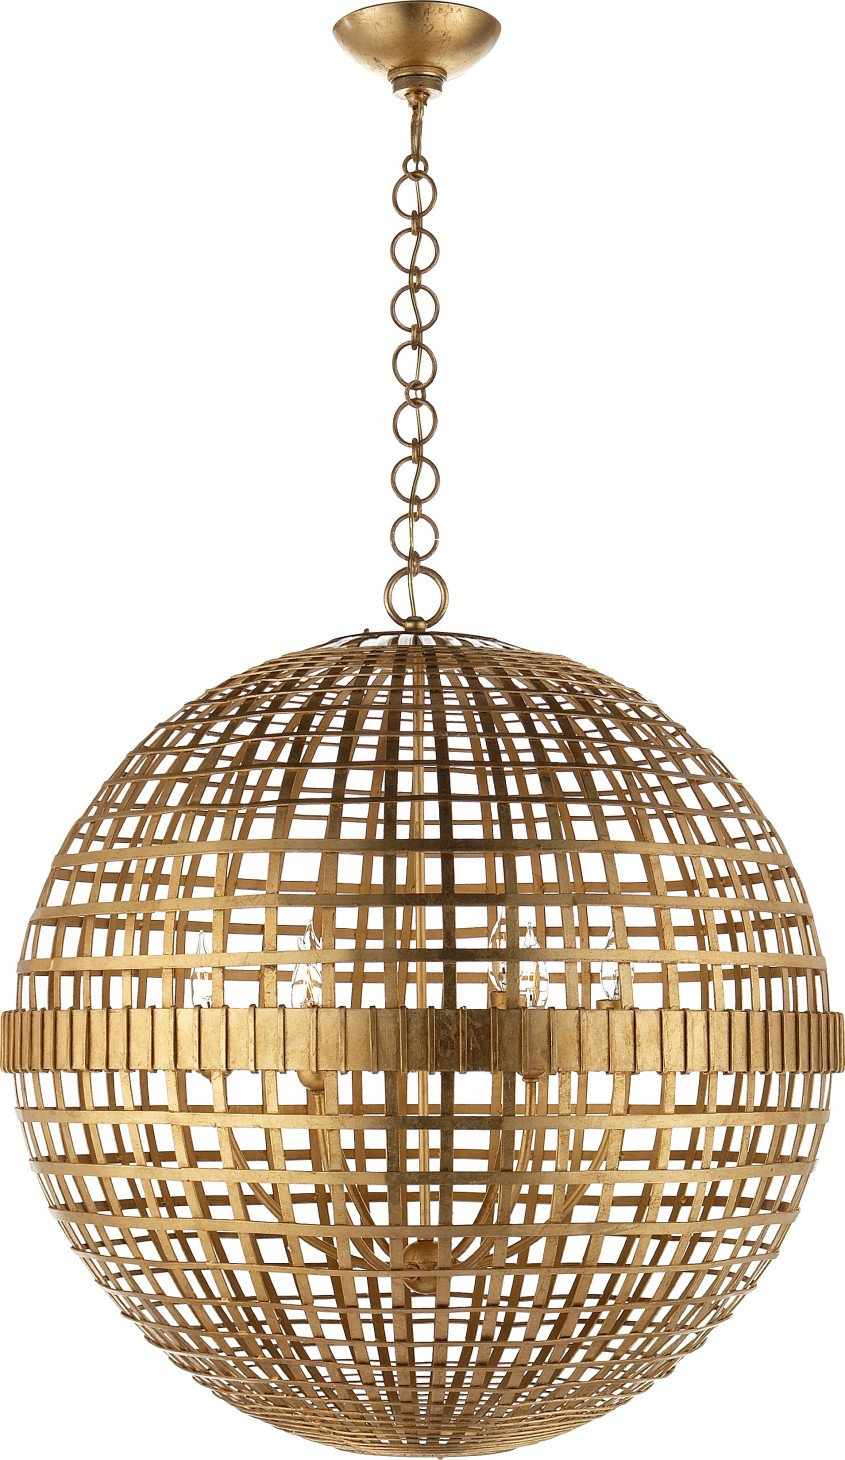 Circa Lighting Intended For Visual Comforts Lighting Visual Comforts Lighting With Regard To Your Home